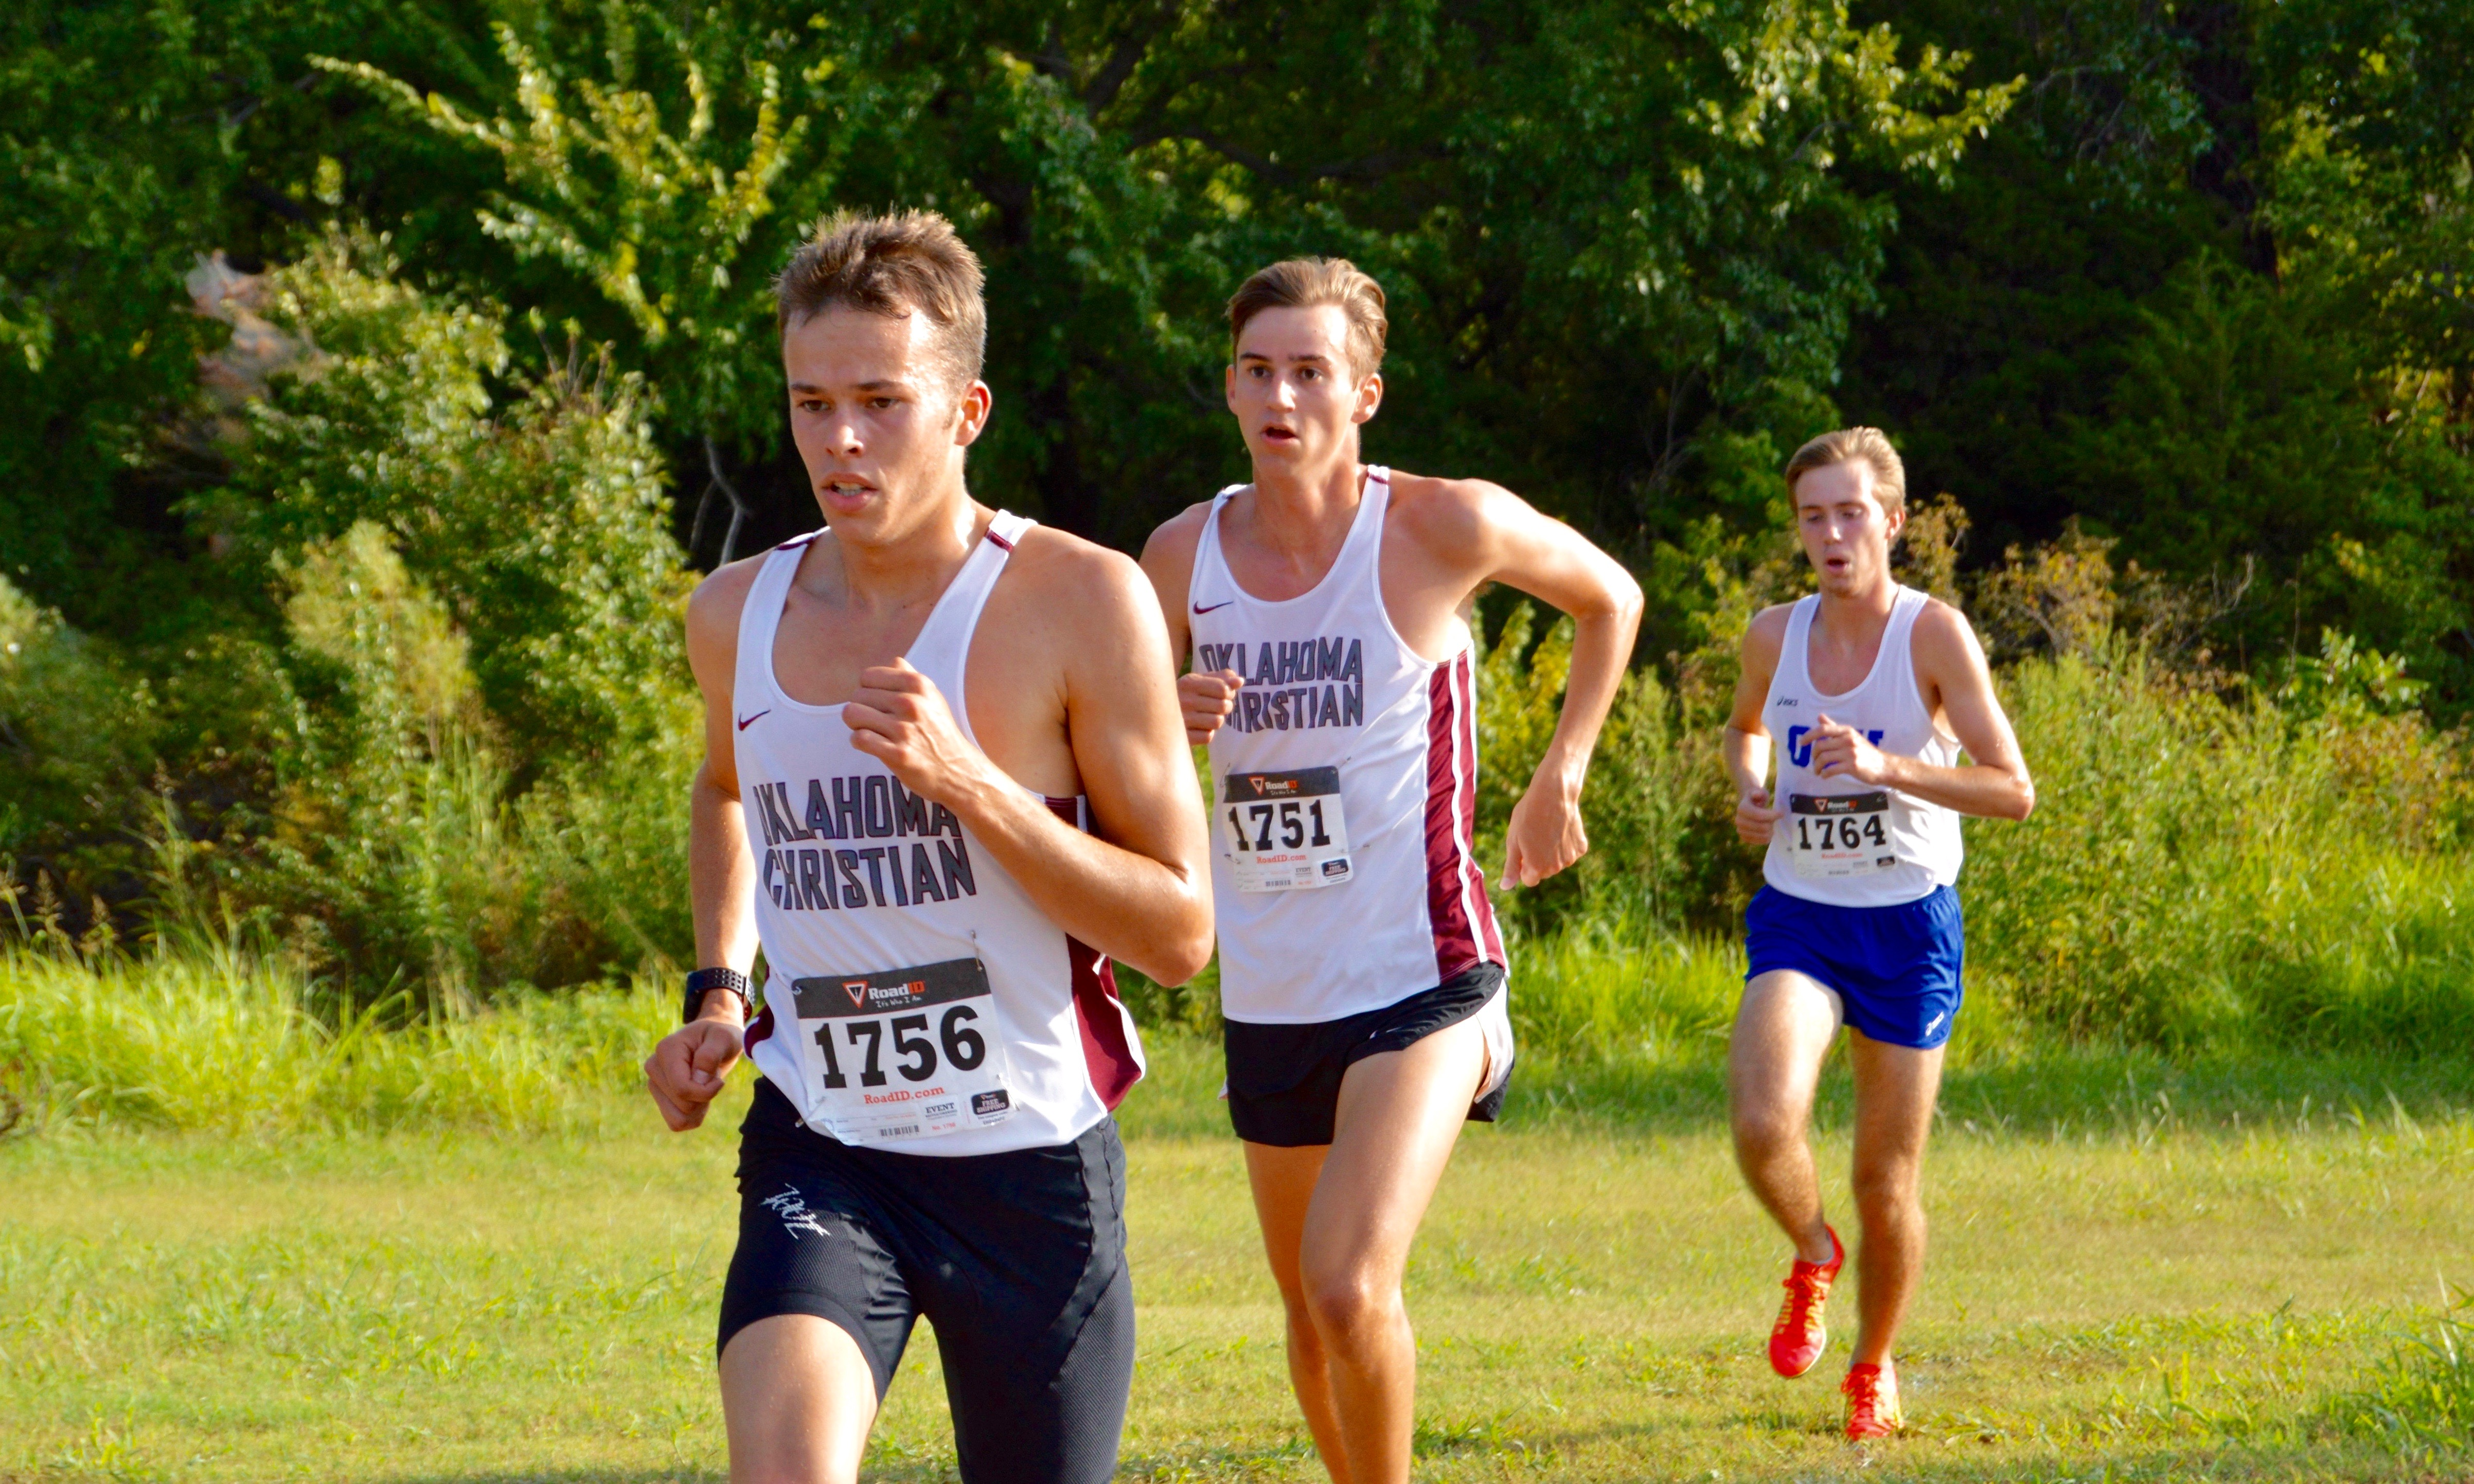 Emory Lobley (front) and Evan Durril (middle) compete at the UCO Land Run on September 3rd. Photo by Katie Jones.